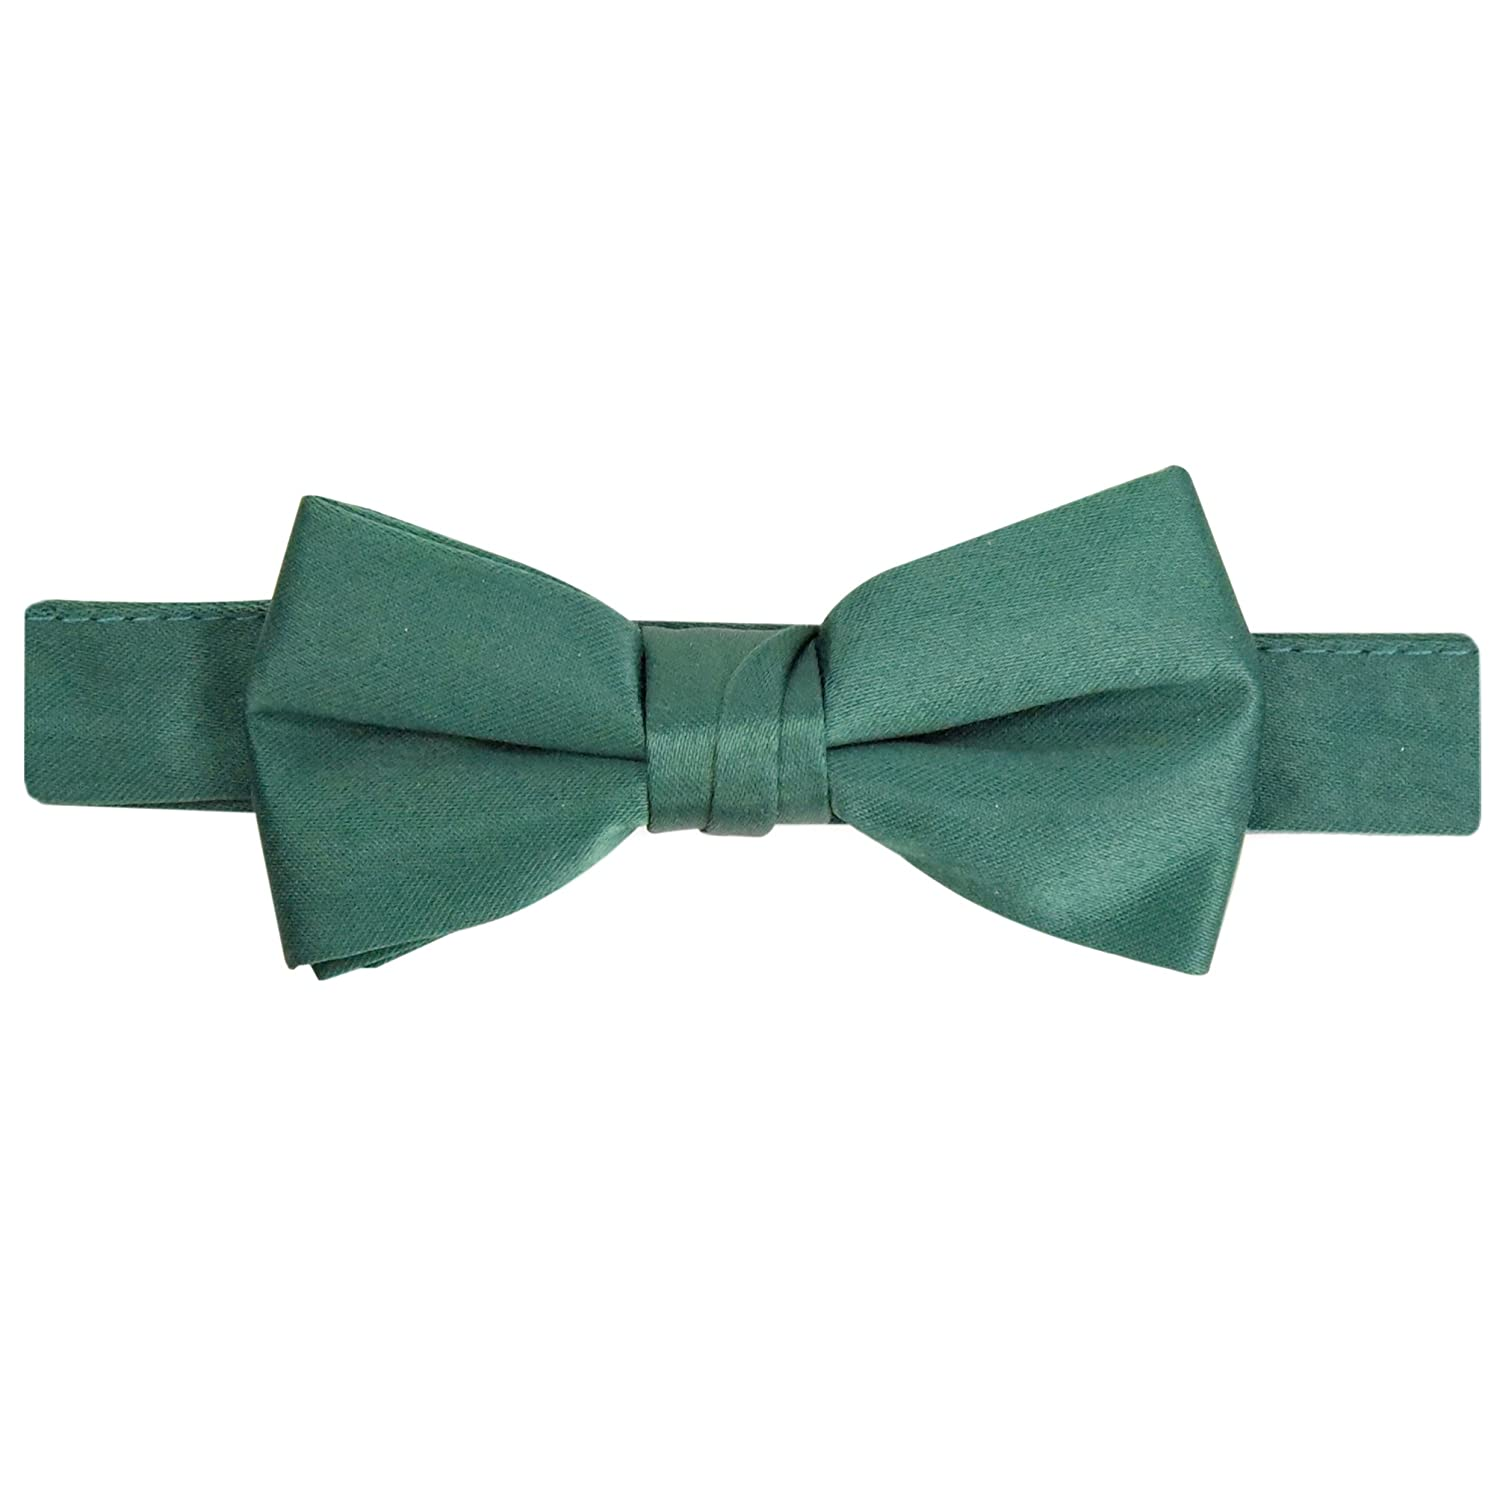 Hold'Em Bow Tie For Mens Boys and Baby Satin look Solid Color Adjustable Pre-tied Made in USA